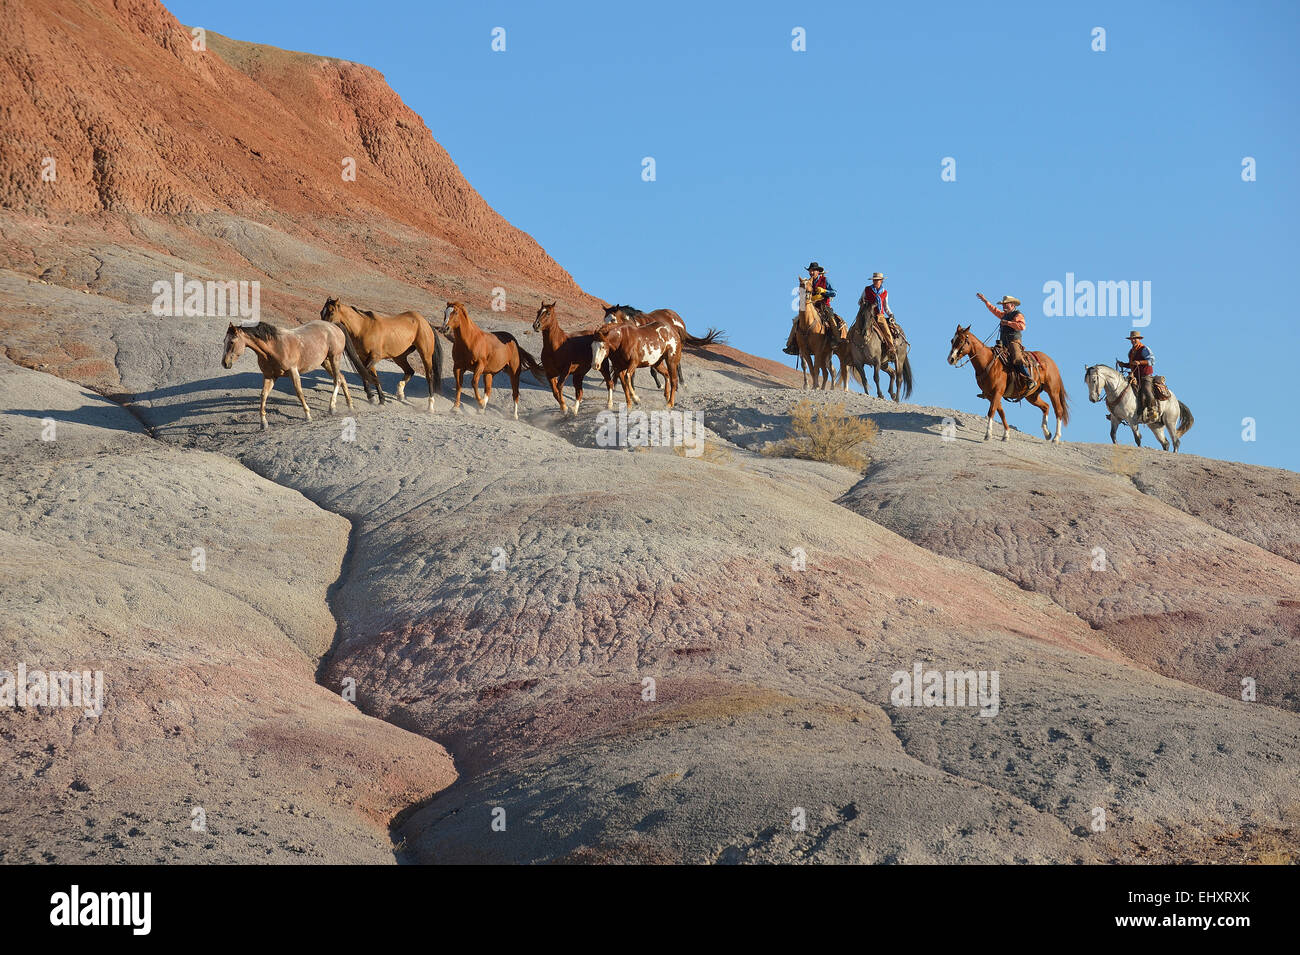 USA, Wyoming, cowboys and cowgirls herding horses in badlands - Stock Image